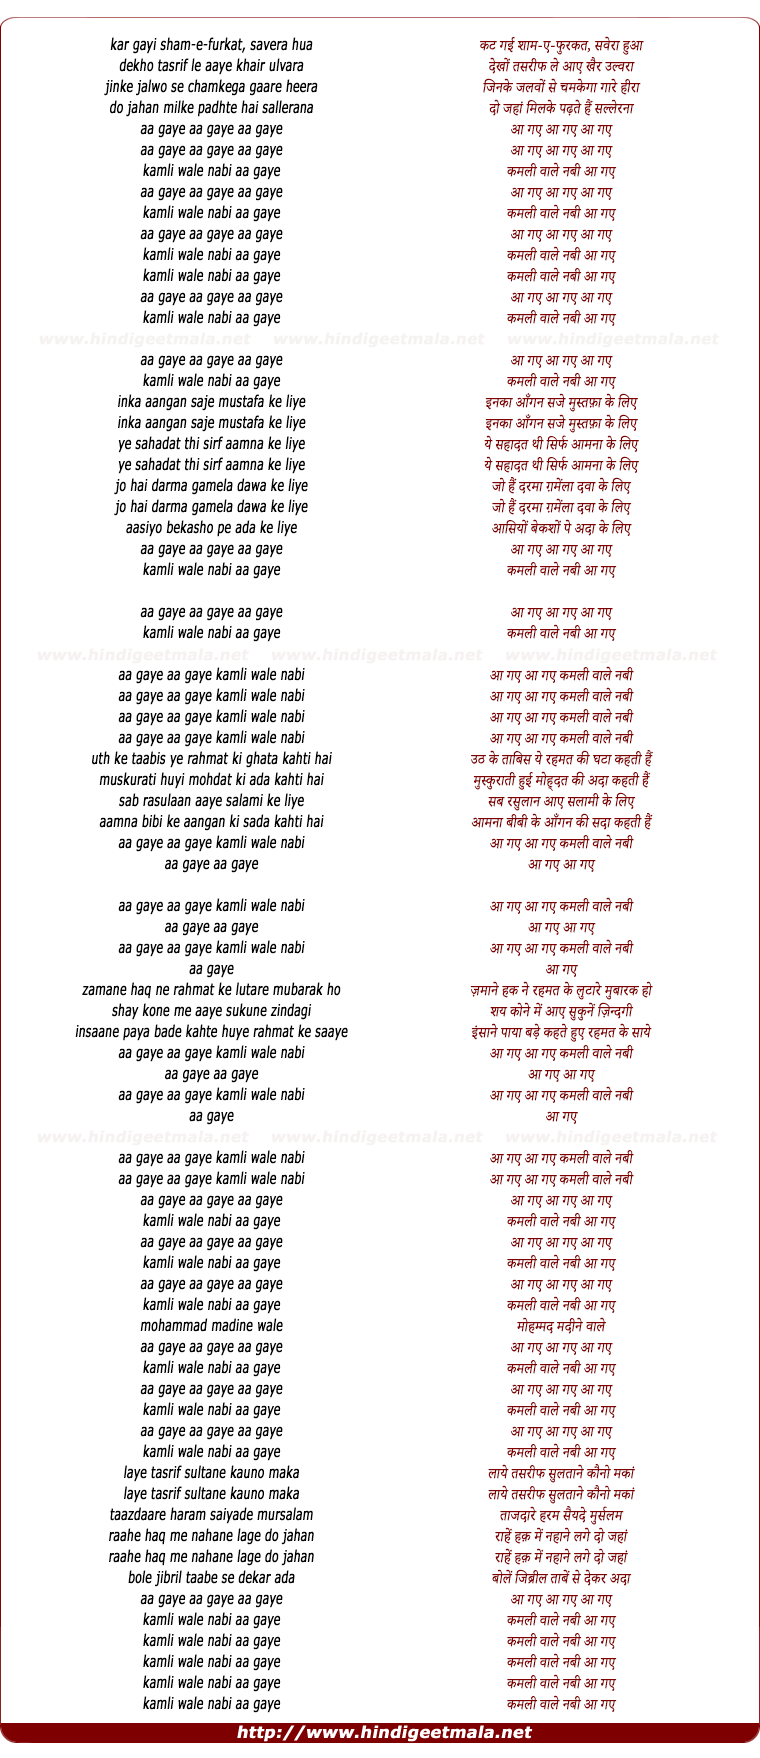 lyrics of song Aa Gaye Kamli Wale Nabi Aa Gaye